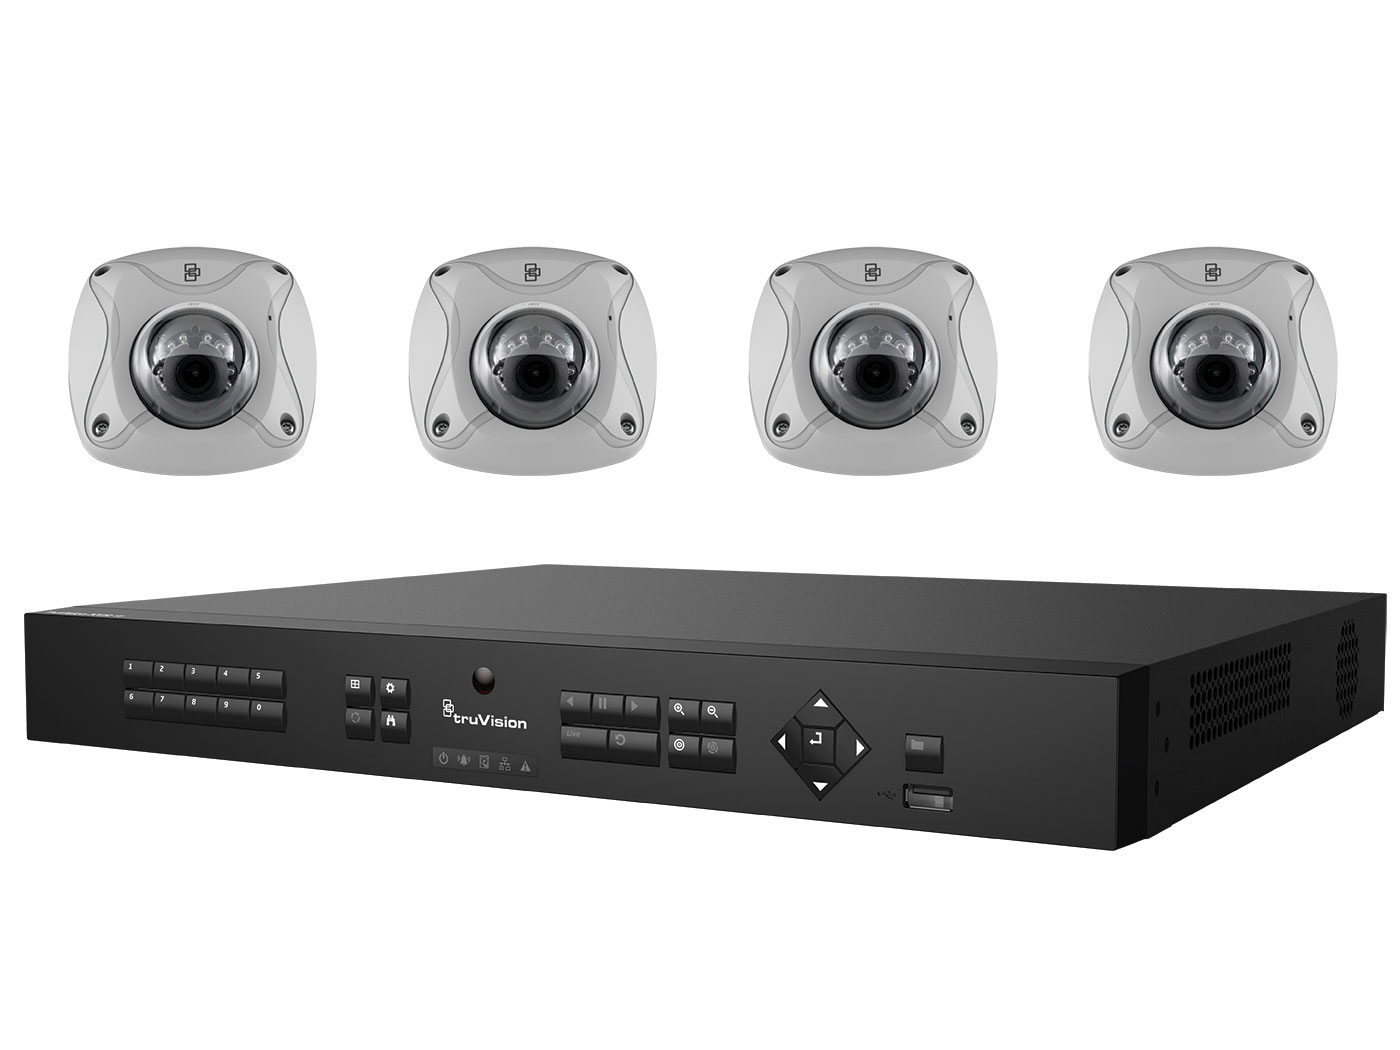 TVN-1108-KW4 INTERLOGIX 8-Channel NVR w/4 4MPx (2.8mm) IR Wedge Cameras Video Kit ************************* SPECIAL ORDER ITEM NO RETURNS OR SUBJECT TO RESTOCK FEE *************************